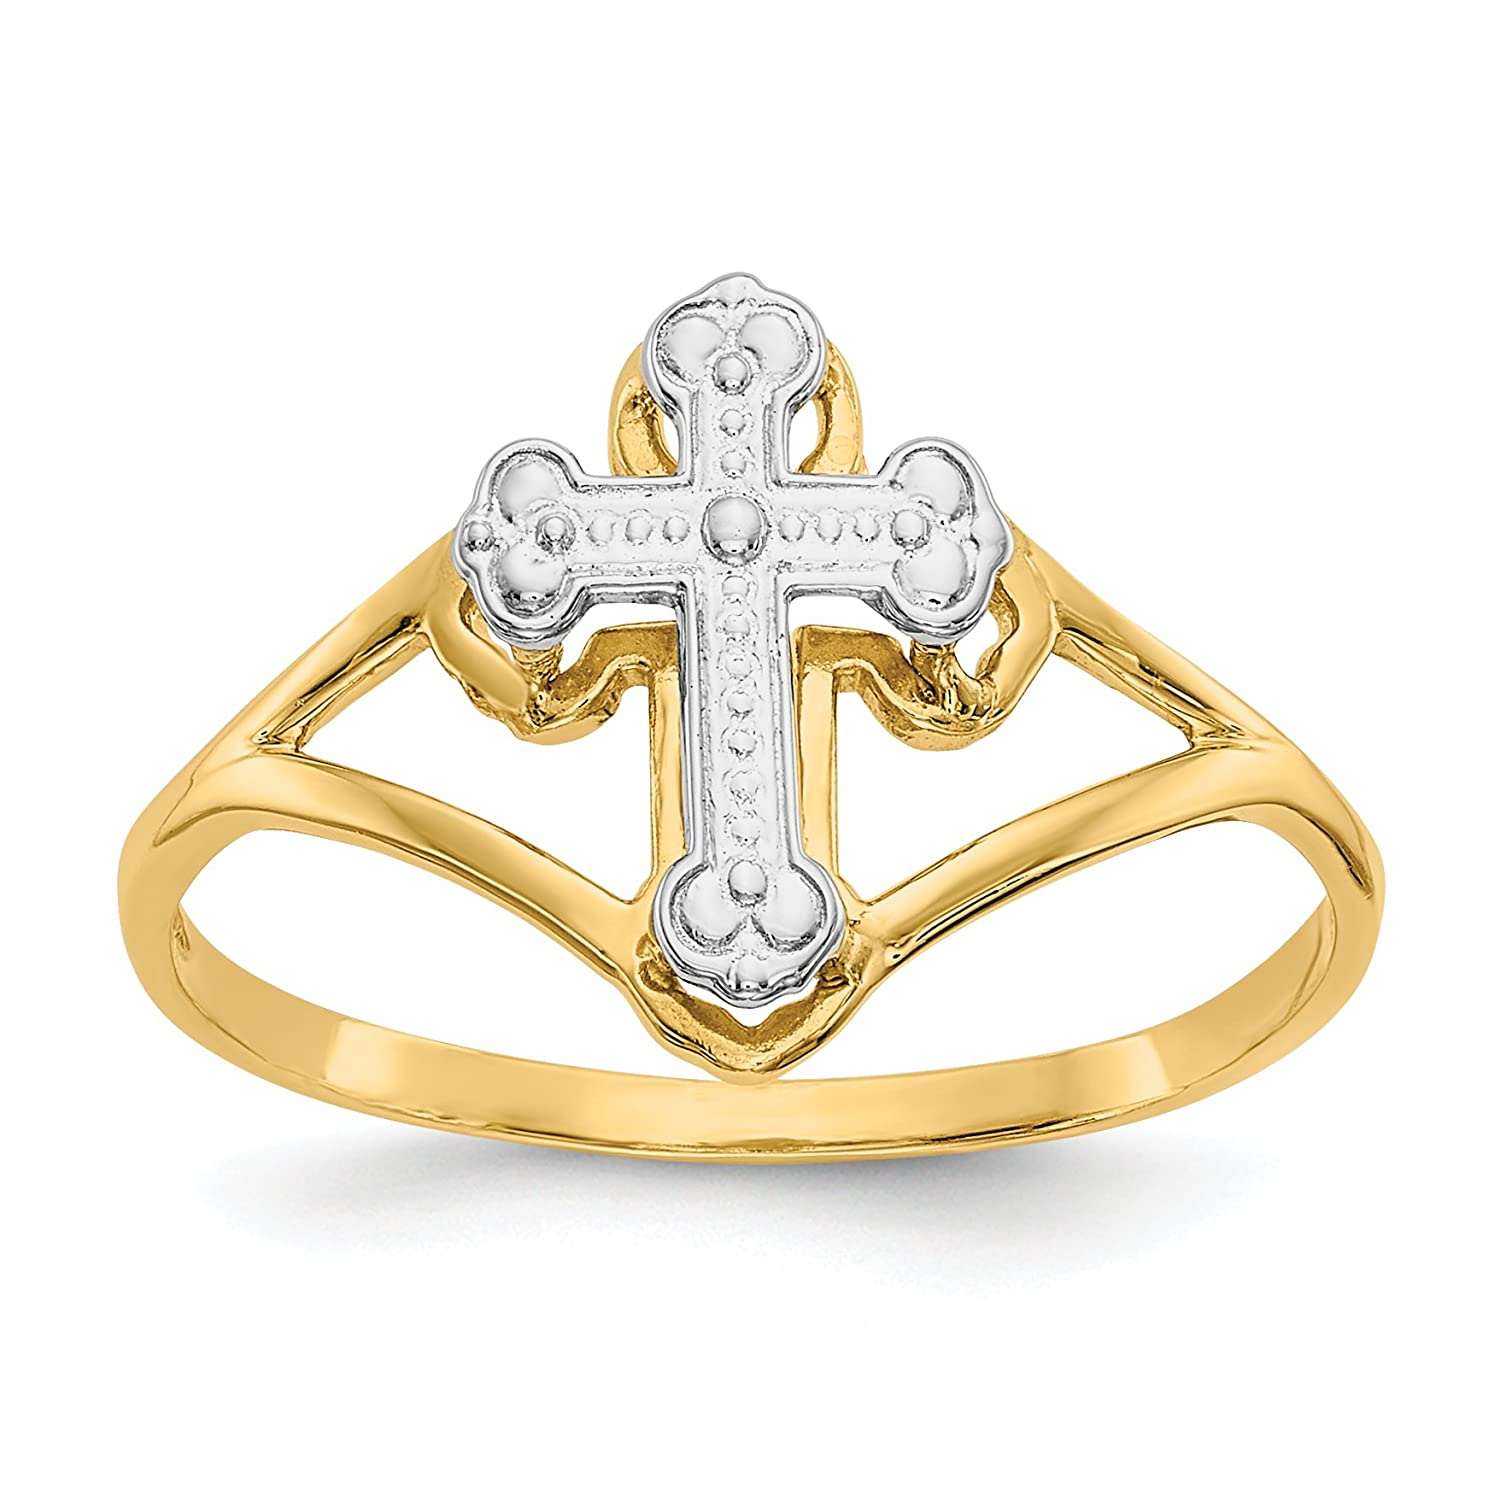 14k Yellow Gold And Rhodium Cross Ring Size 7 Fine Jewelry Ideal Gifts For Women